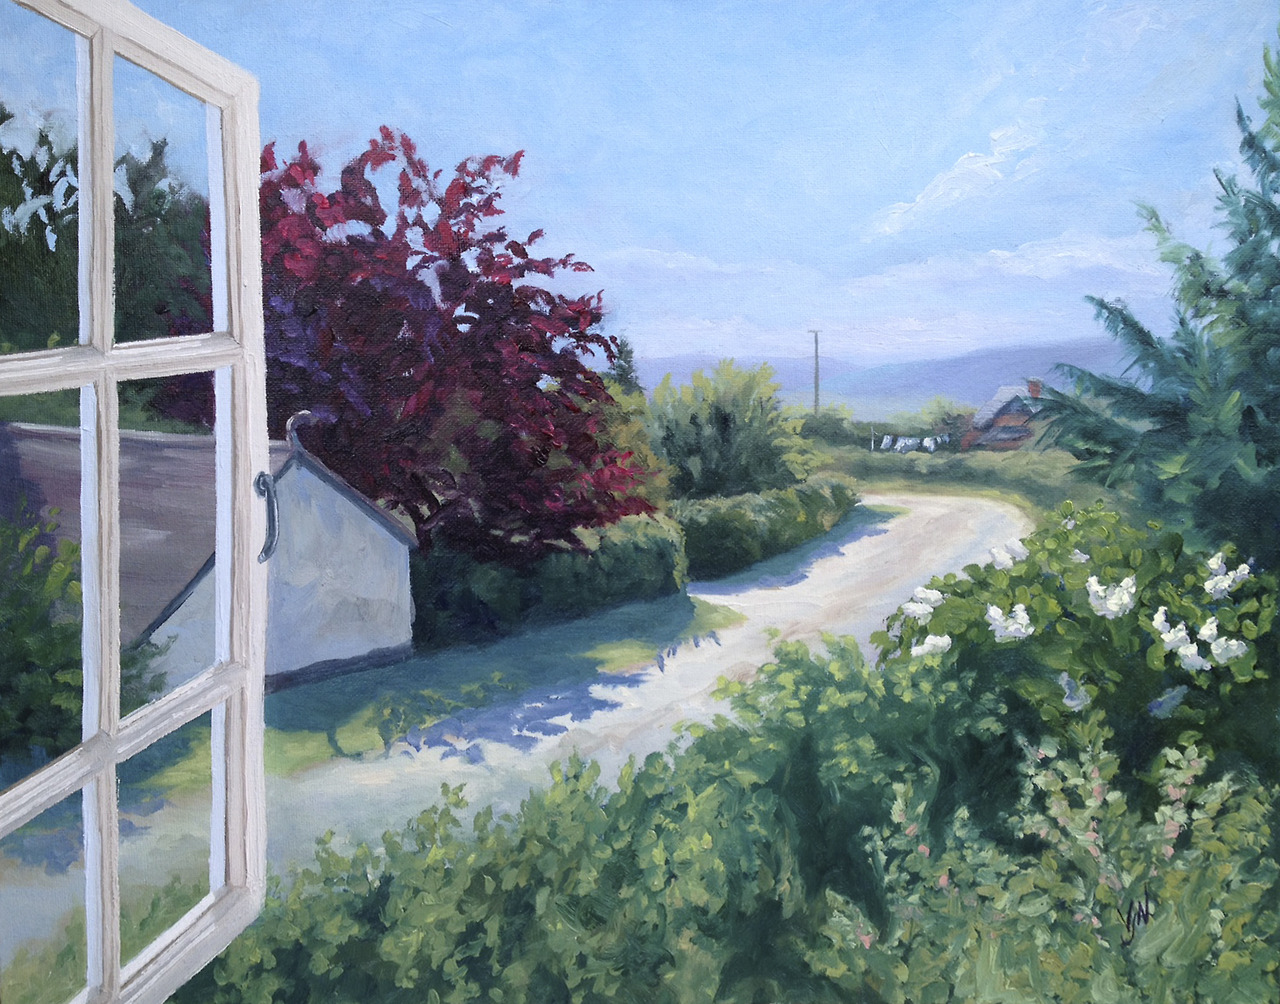 A commission of the view from the window of a holiday cottage in Bishop's Castle - I really enjoyed capturing the English summer sunlight - especially with the shadows under the hedge